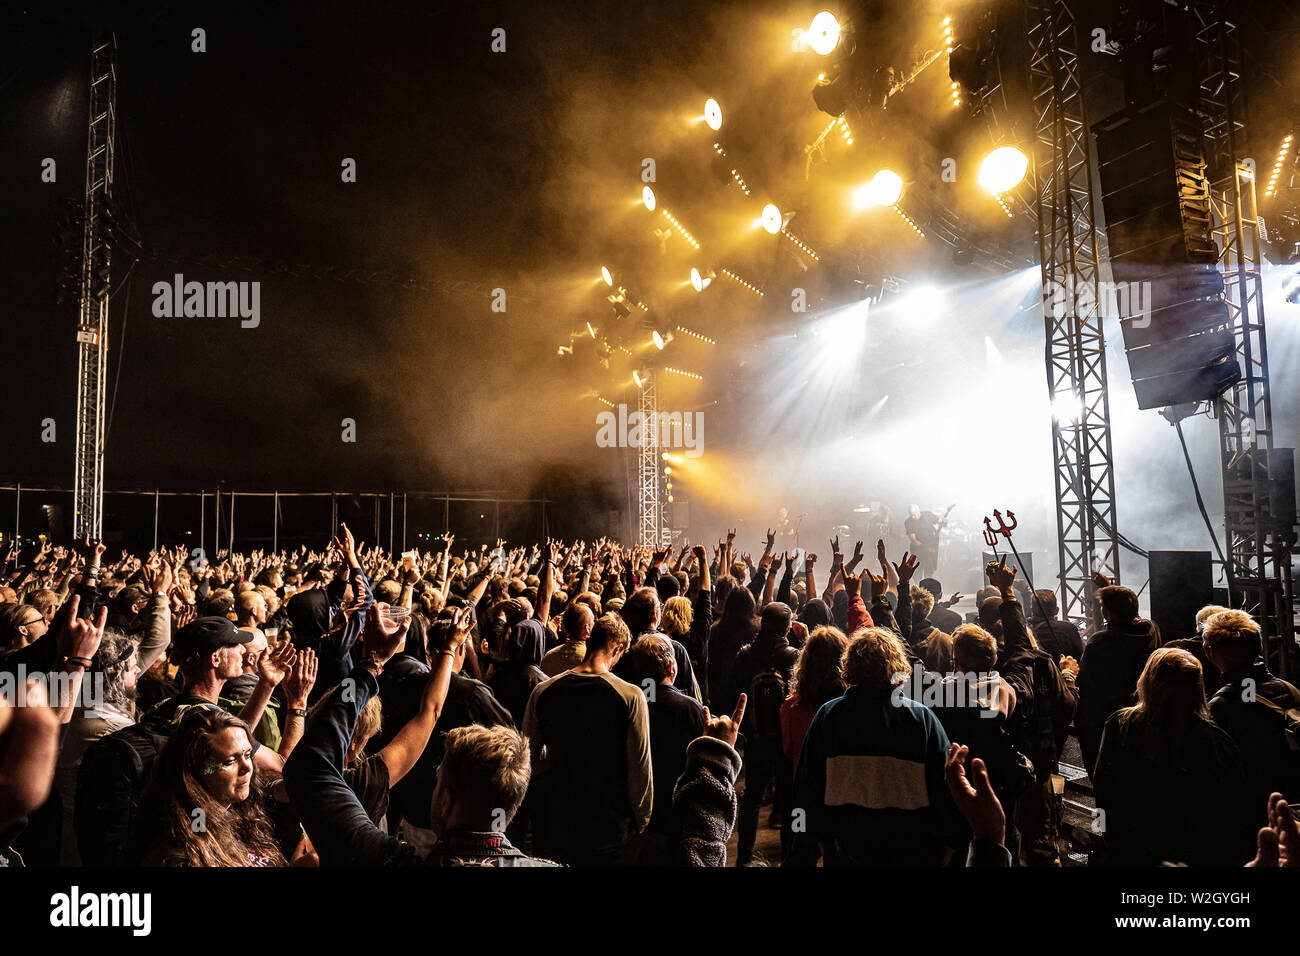 Roskilde, Denmark  July 05th, 2019  Concert goers attend a live